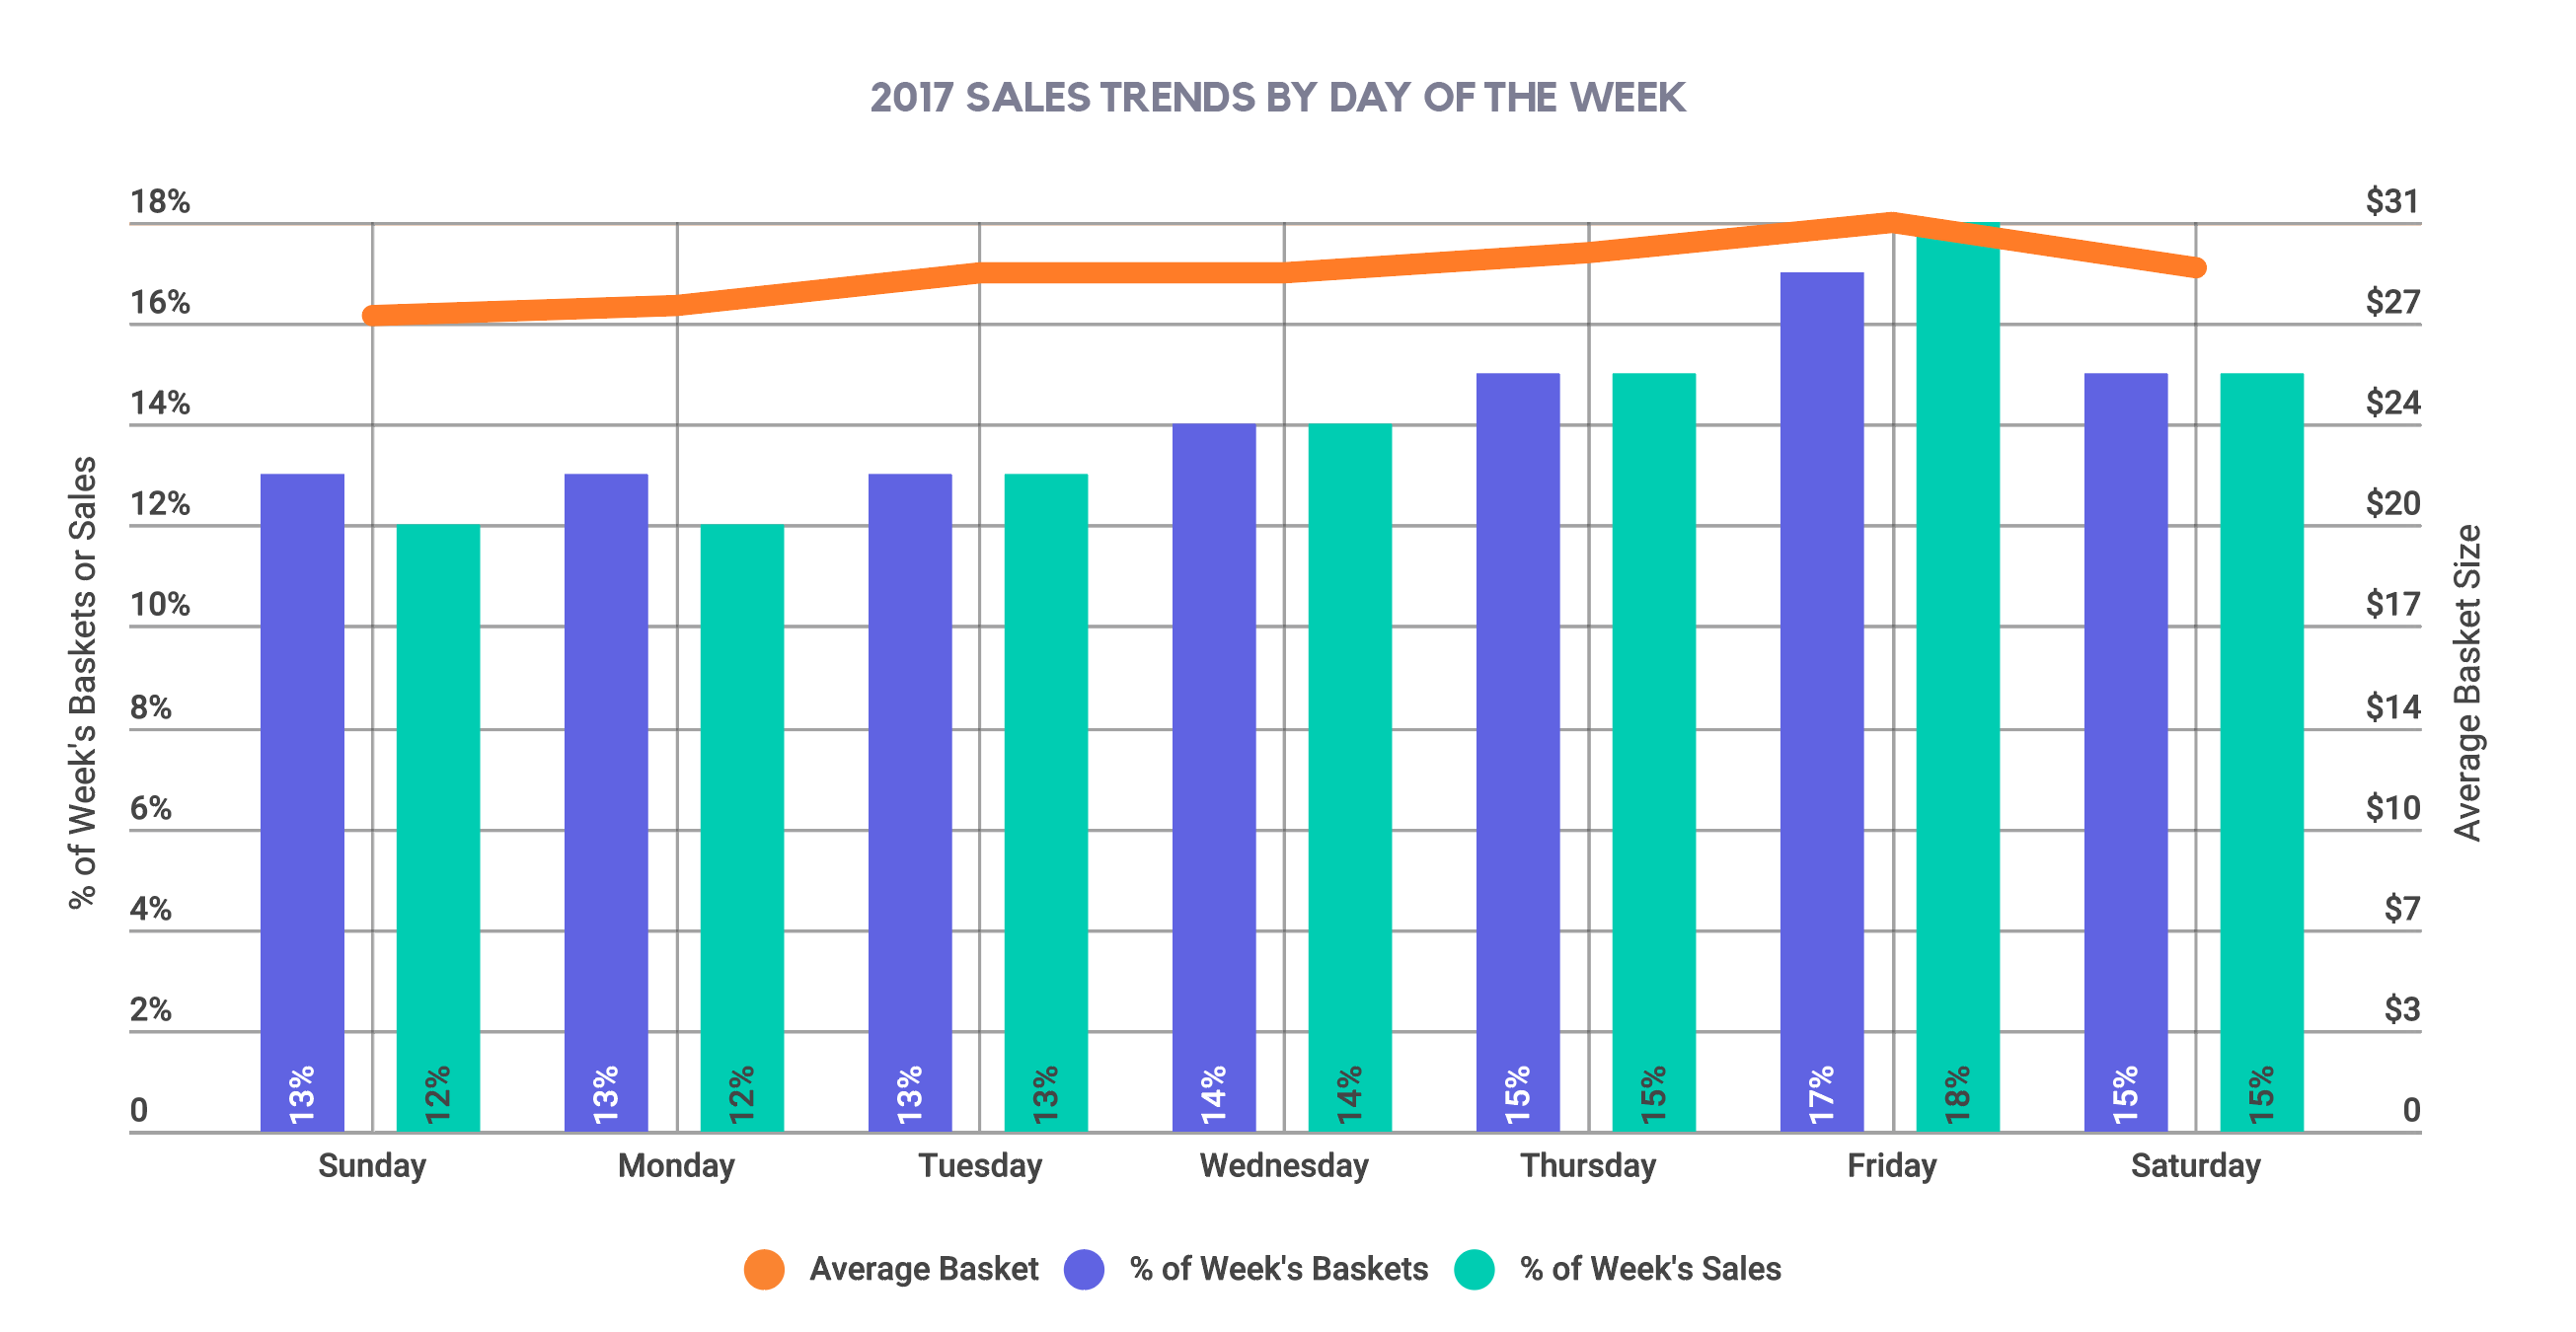 2017 SALES TRENDS BY DAY OF THE WEEK